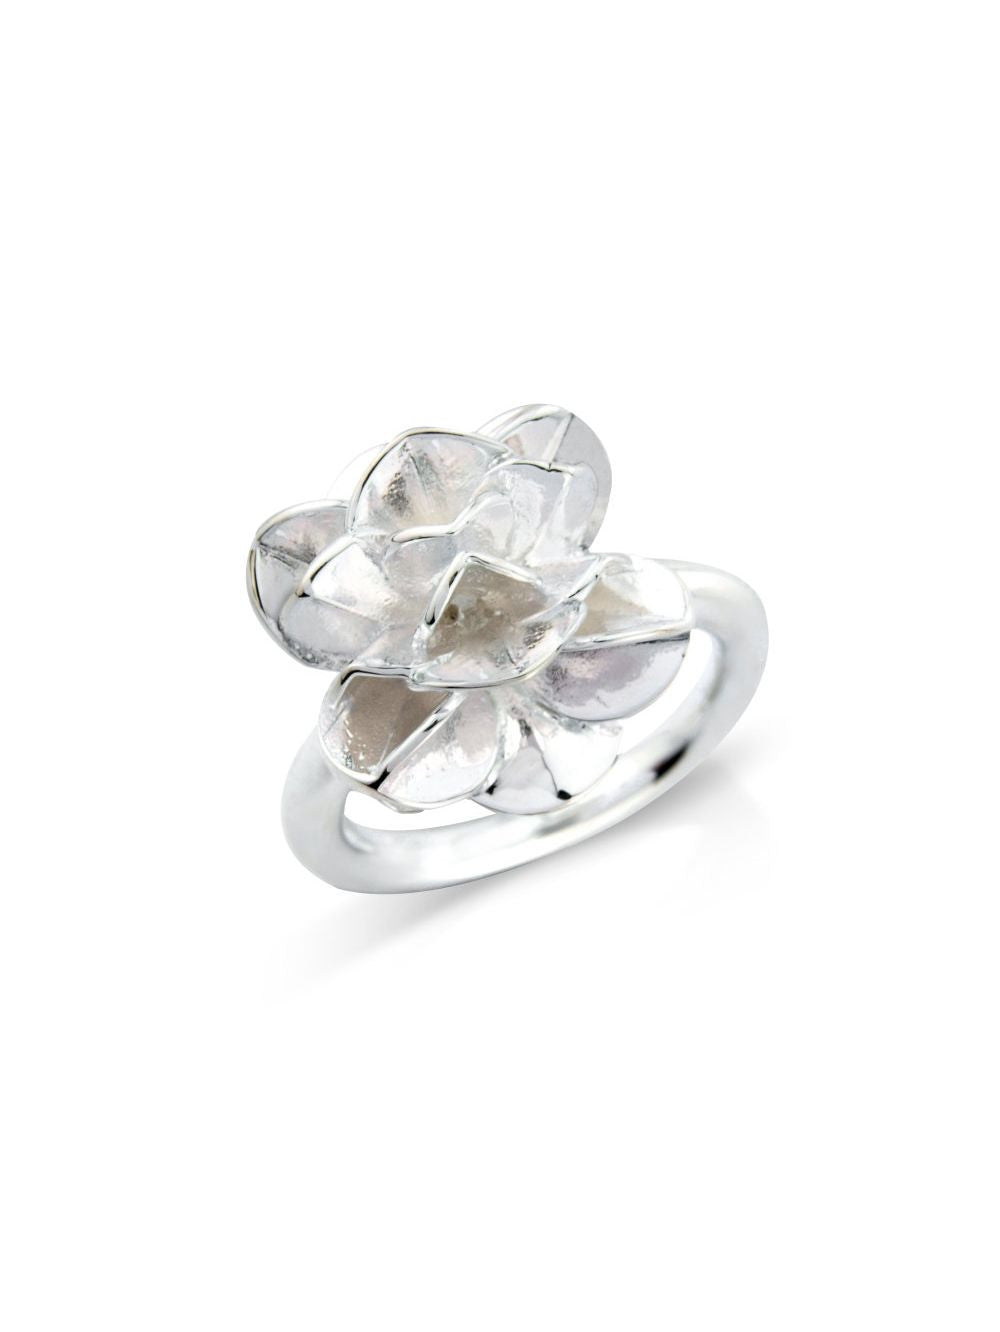 Ísold Silver Ring by Aurum - Art Jewellery Store: Song of Jewellery